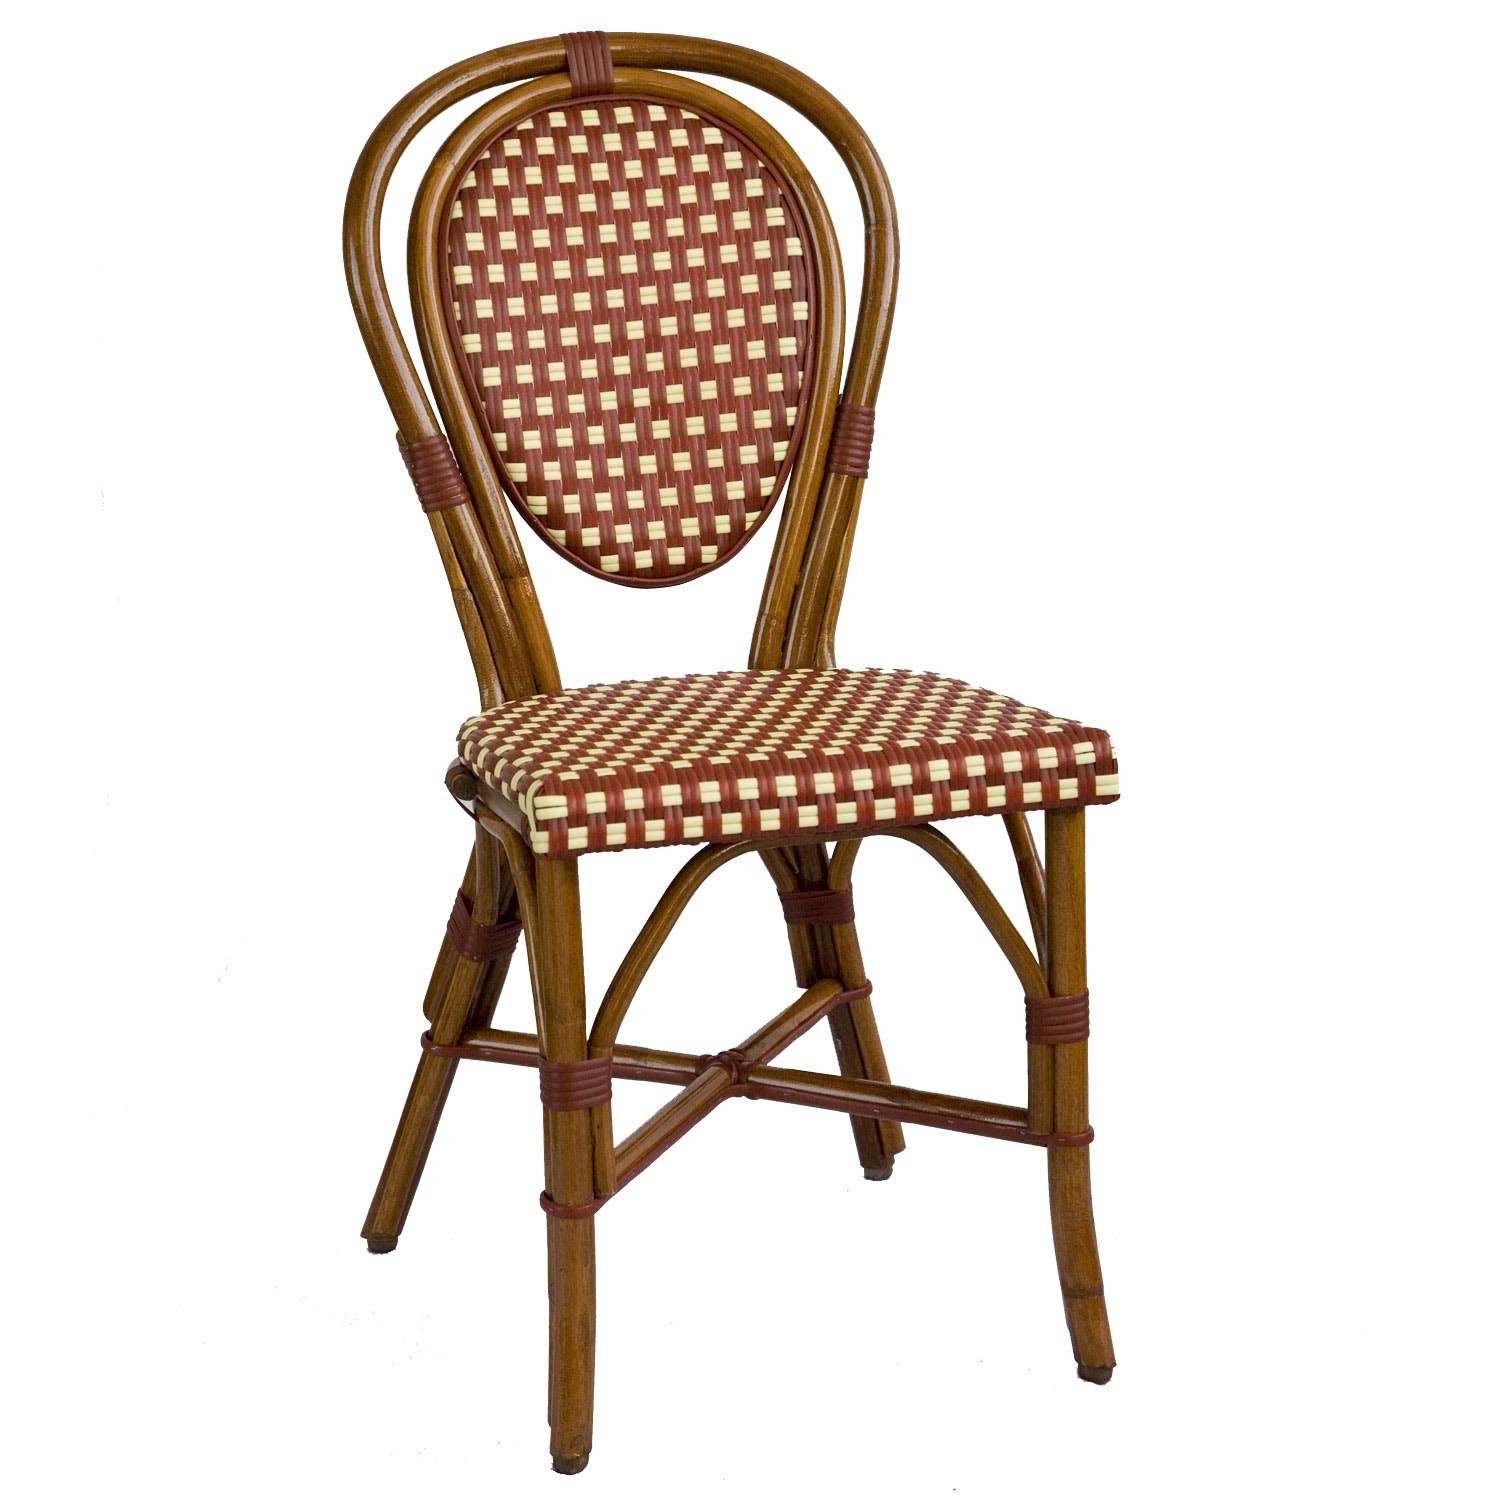 Wicker Chairs | American Country With Regard To Wicker Rocking Chair With Magazine Holder (#15 of 15)